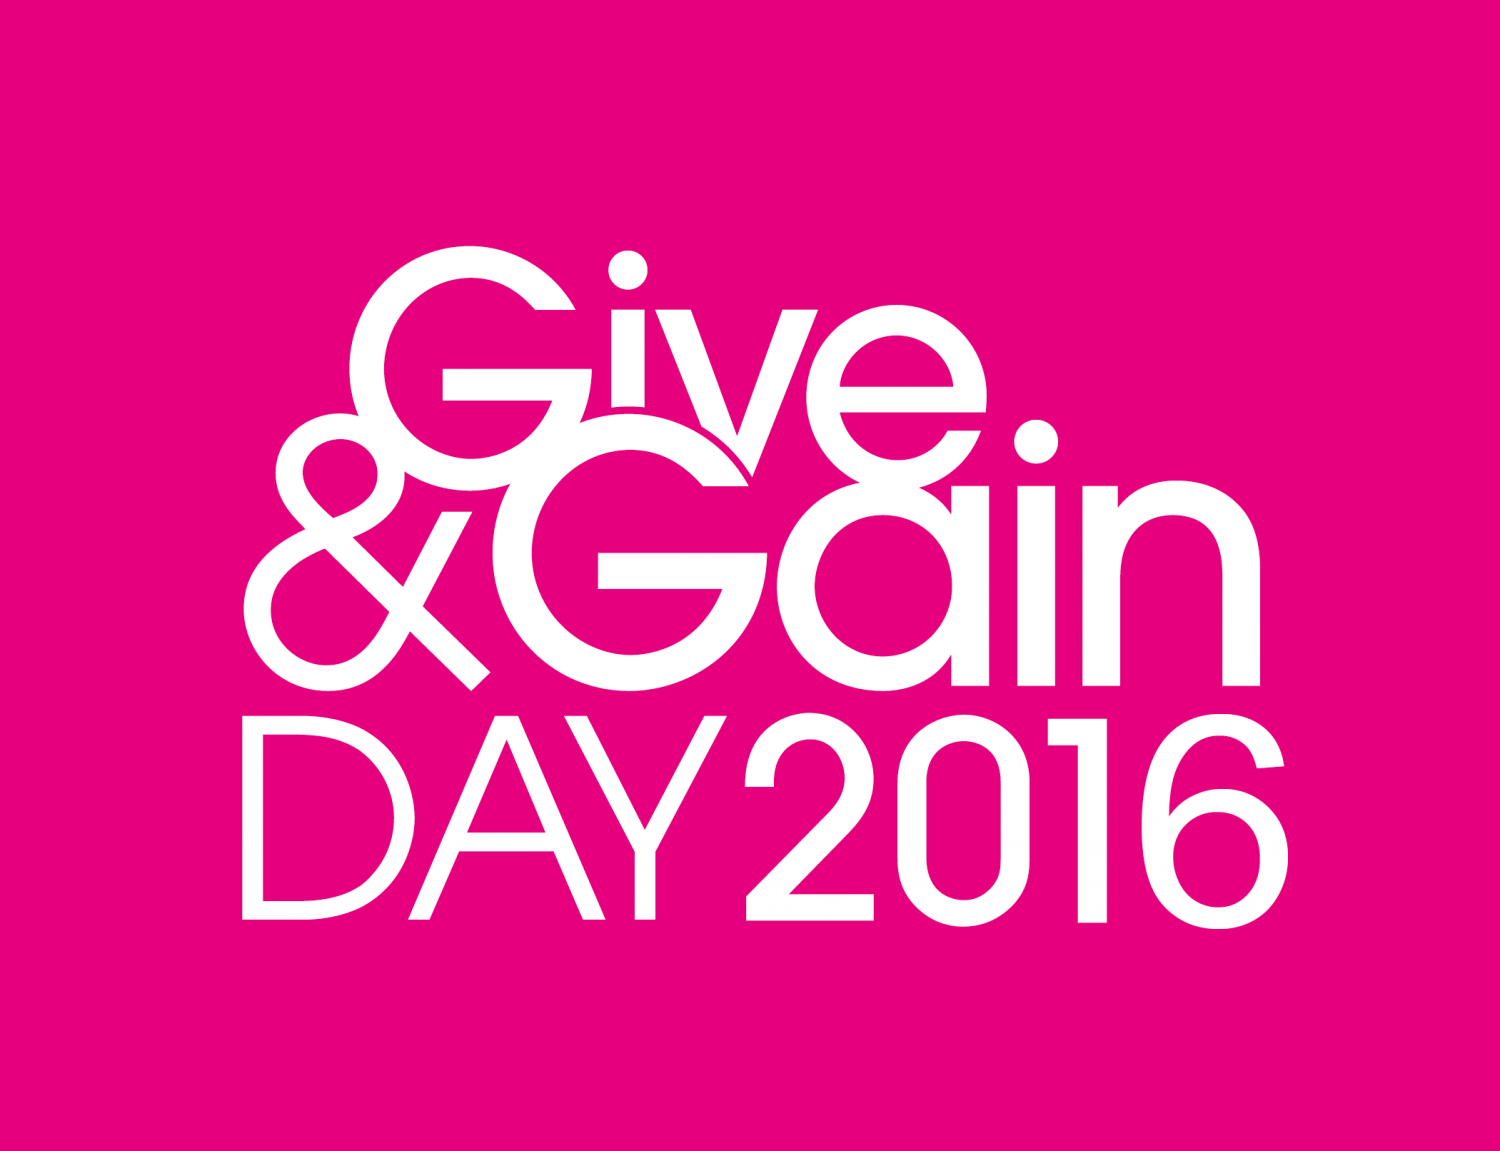 bitc_giveandgain_2016_white_on_magenta_0